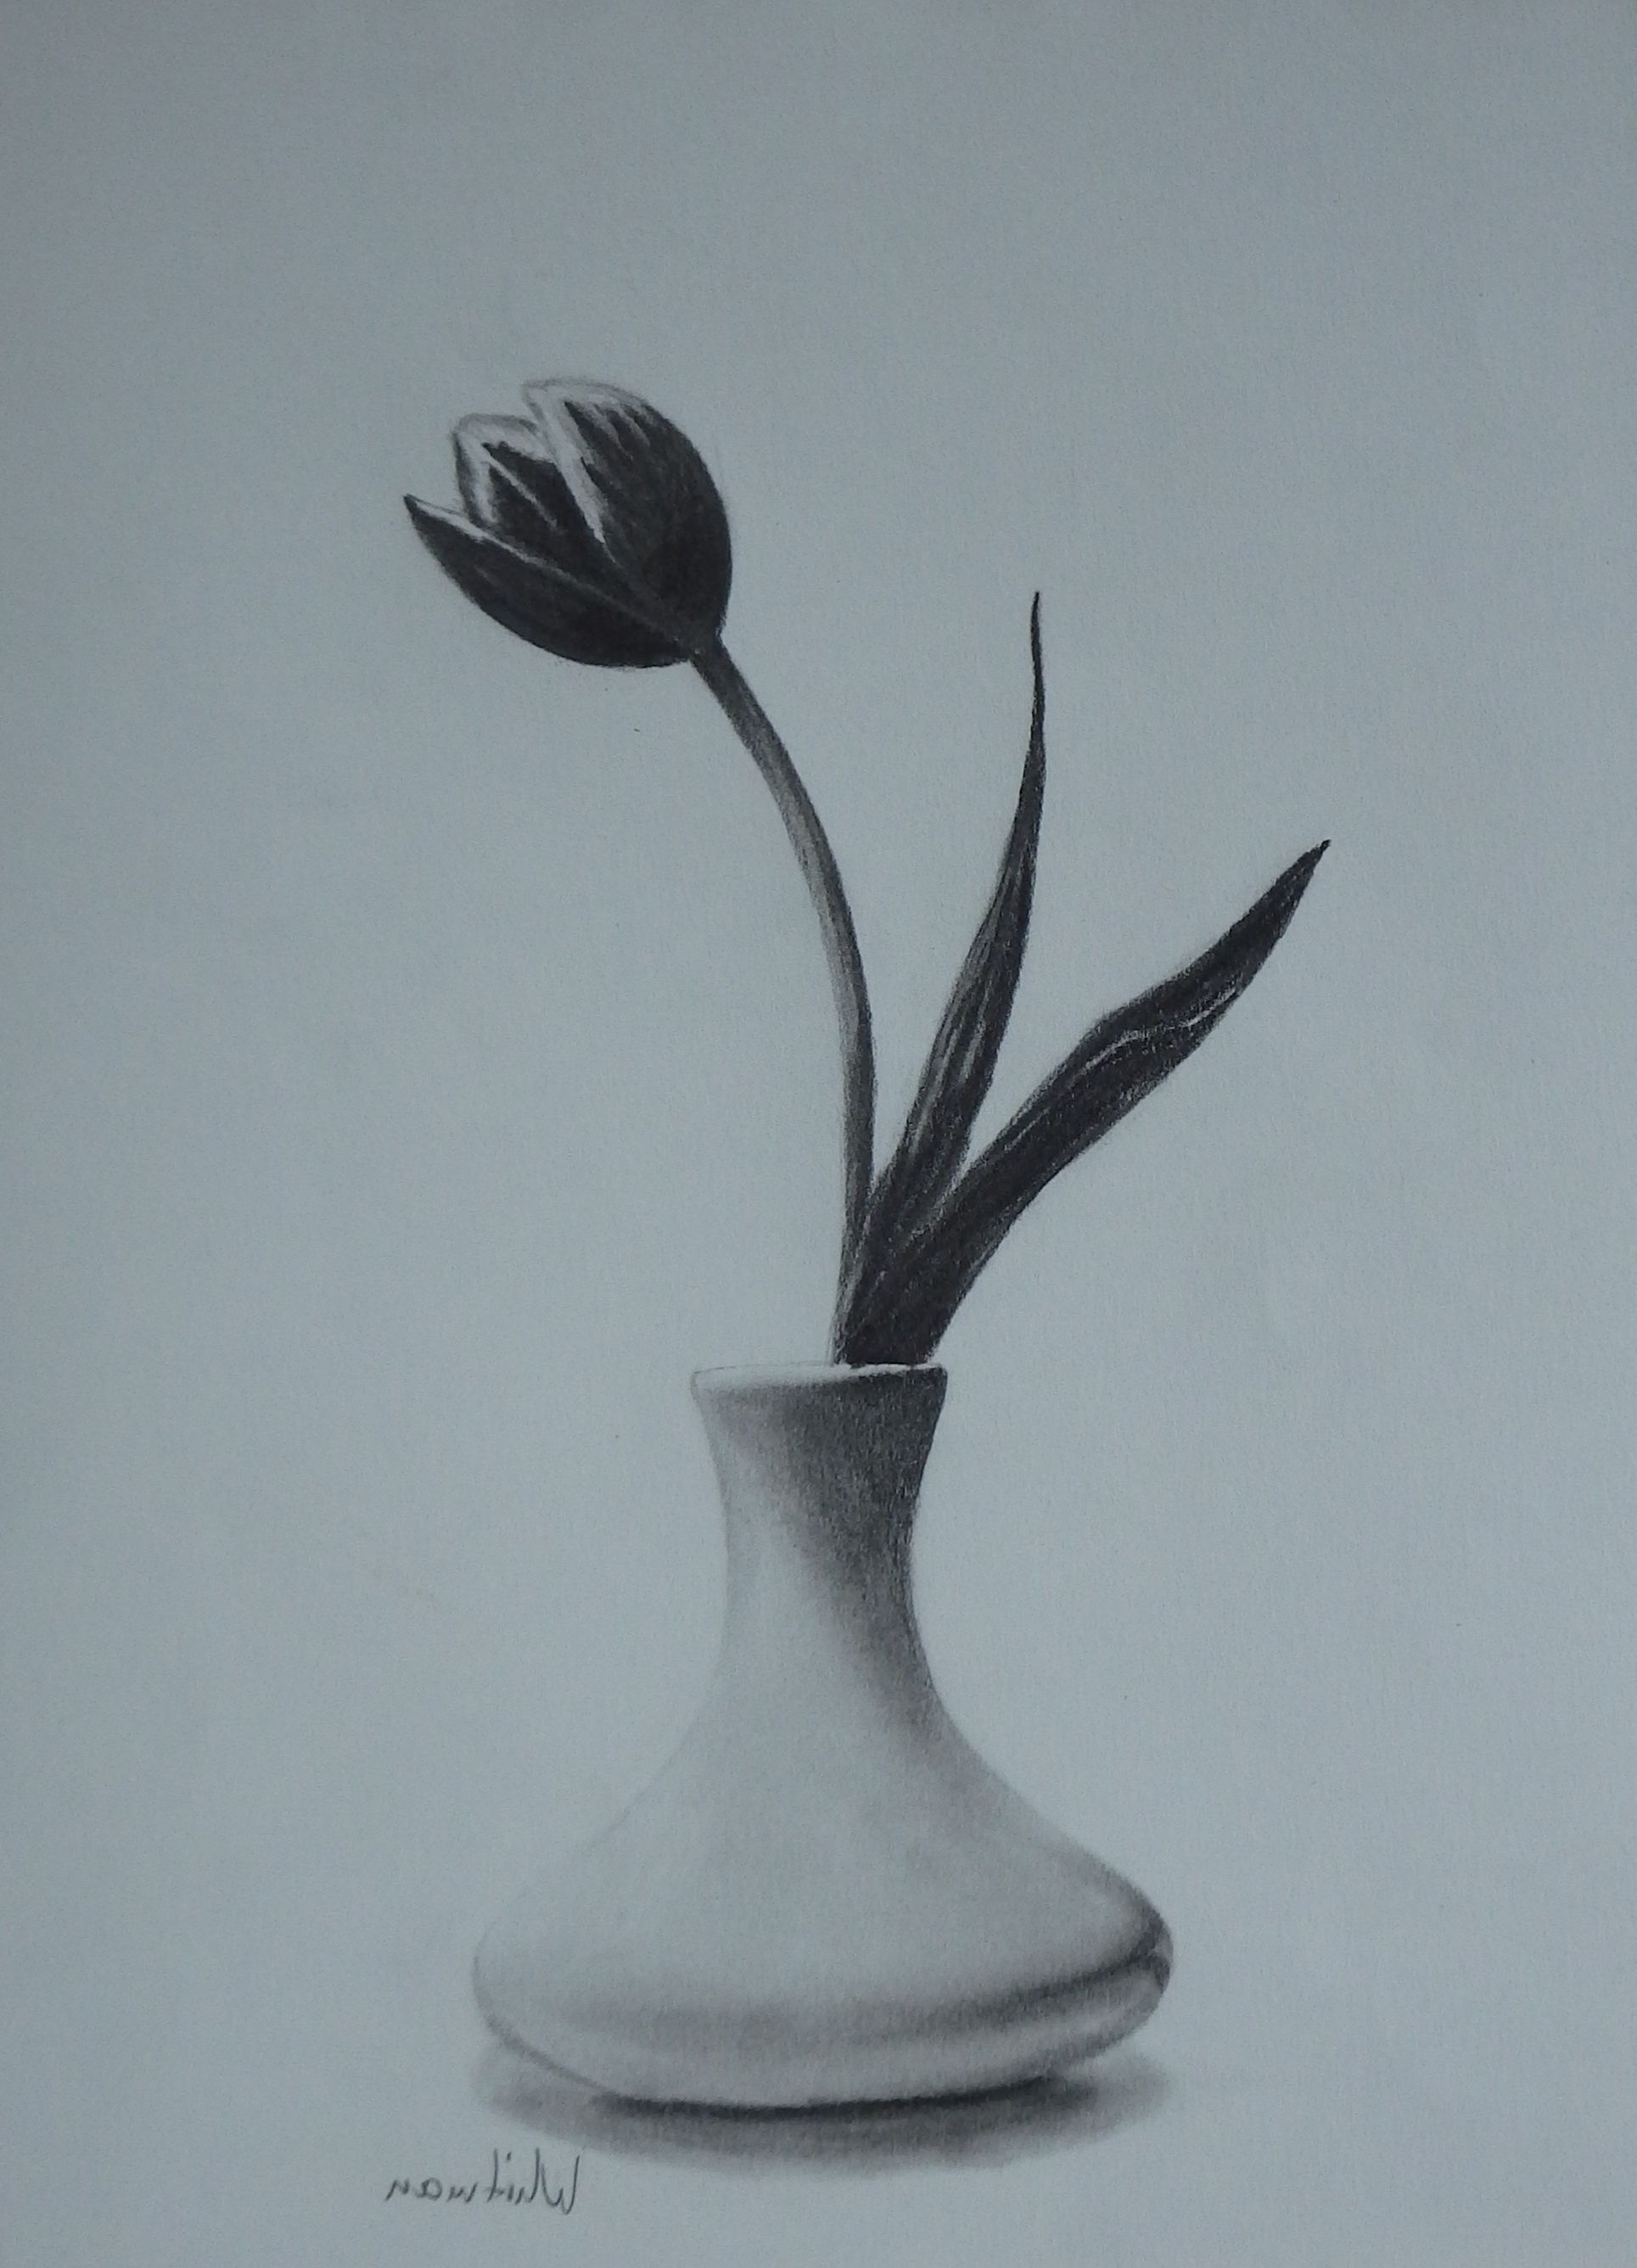 Flower Vase Pencil Sketch Class Pencil Drawings Of Flowers Flower Sketch Pencil Flower Sketches